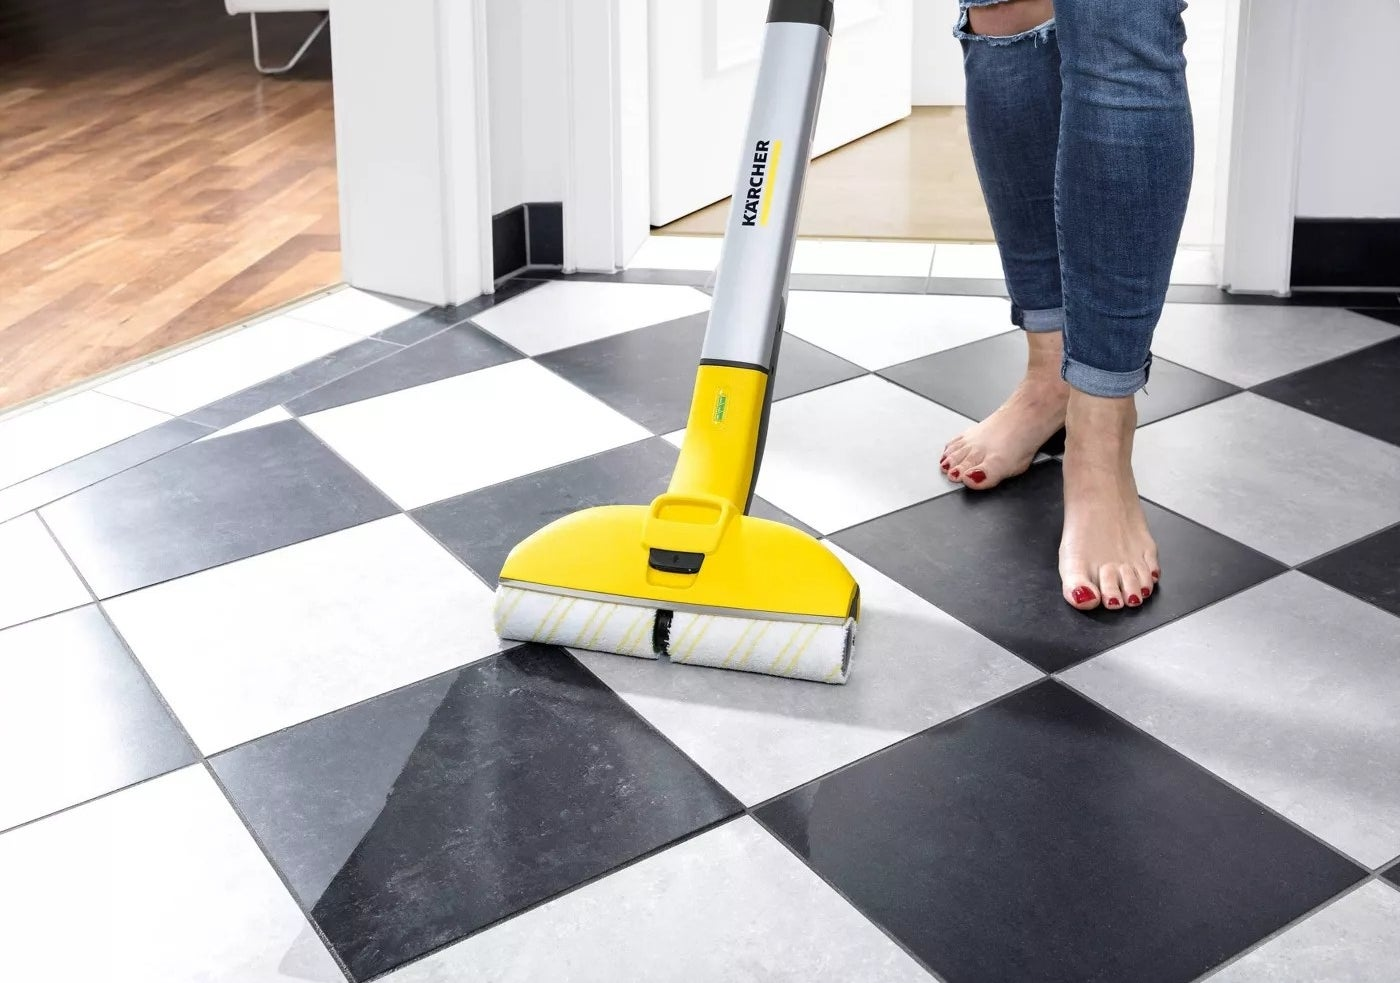 The cordless floor cleaner